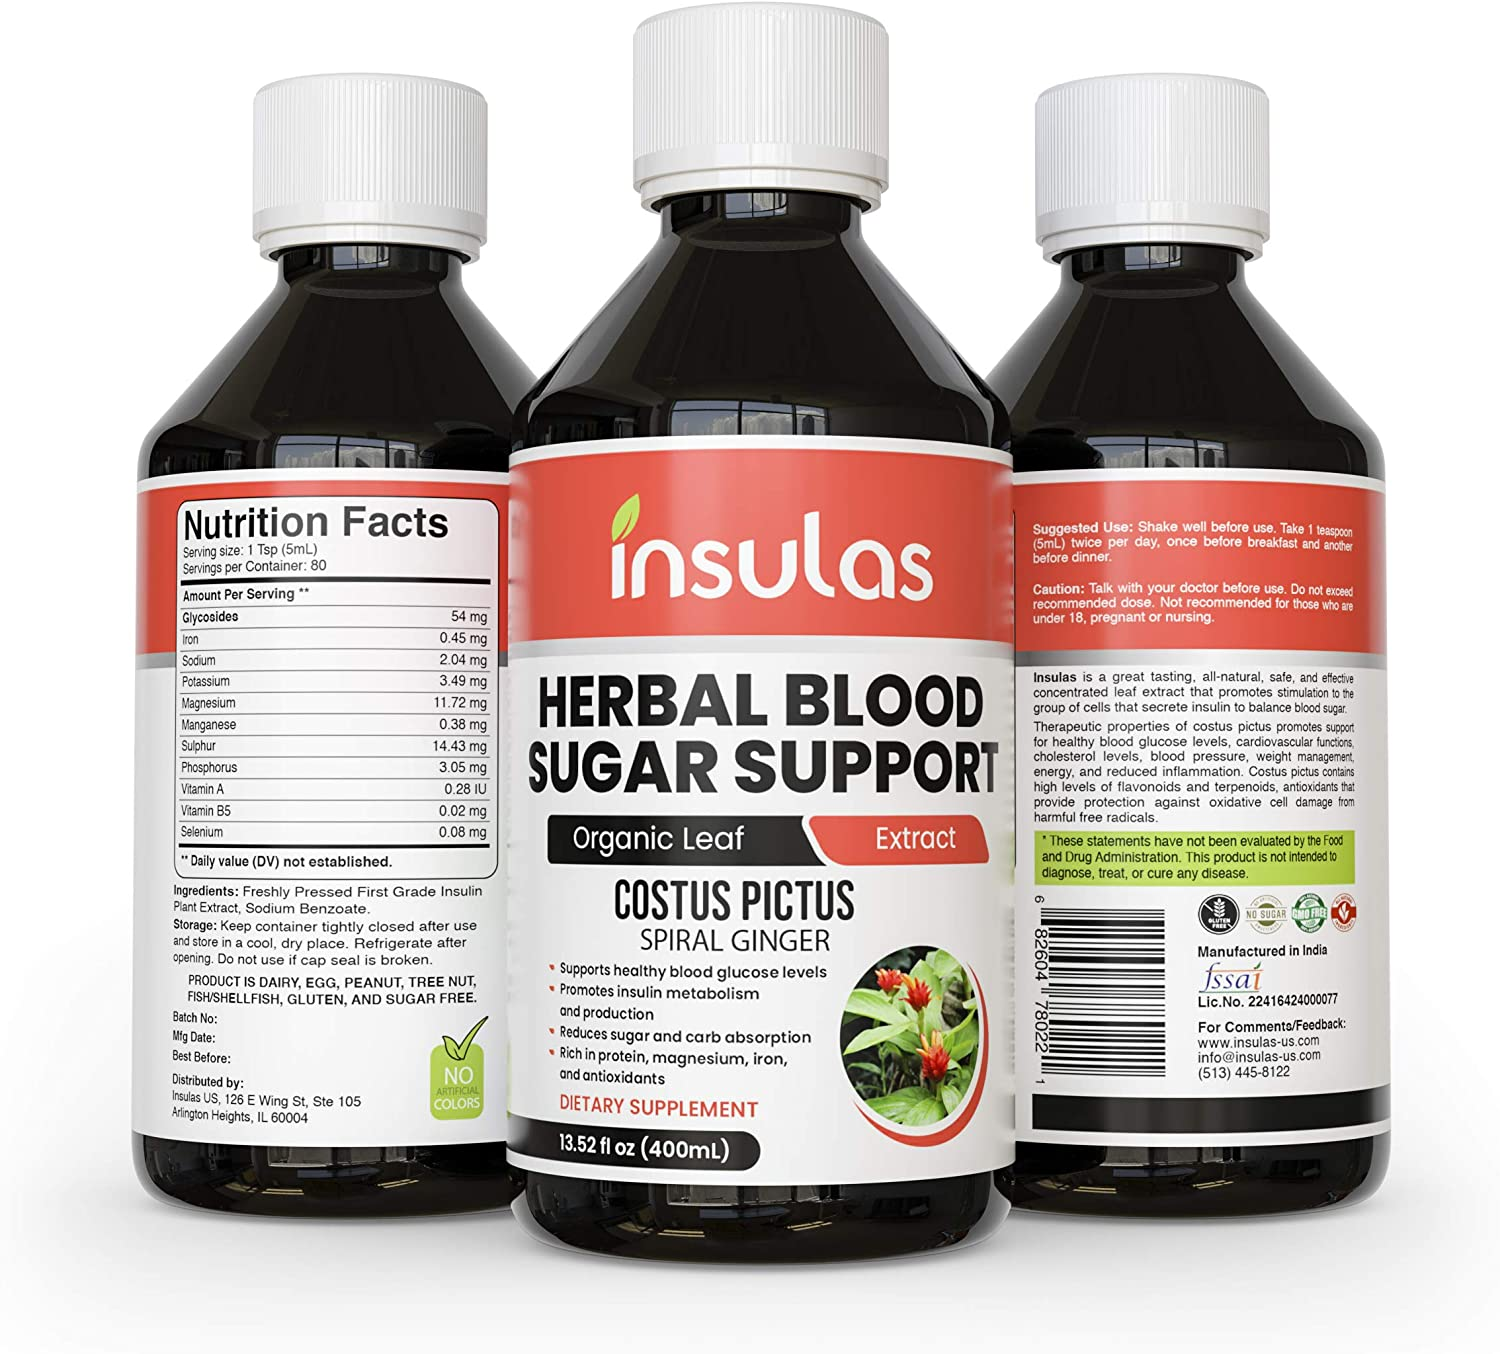 Insulas   Insulin Juice   Herbal Blood Sugar Support   Diabetes and Pre Diabetes Management   Reduces Carb Absorption   Stimulates Insulin Production and Glucose Metabolism